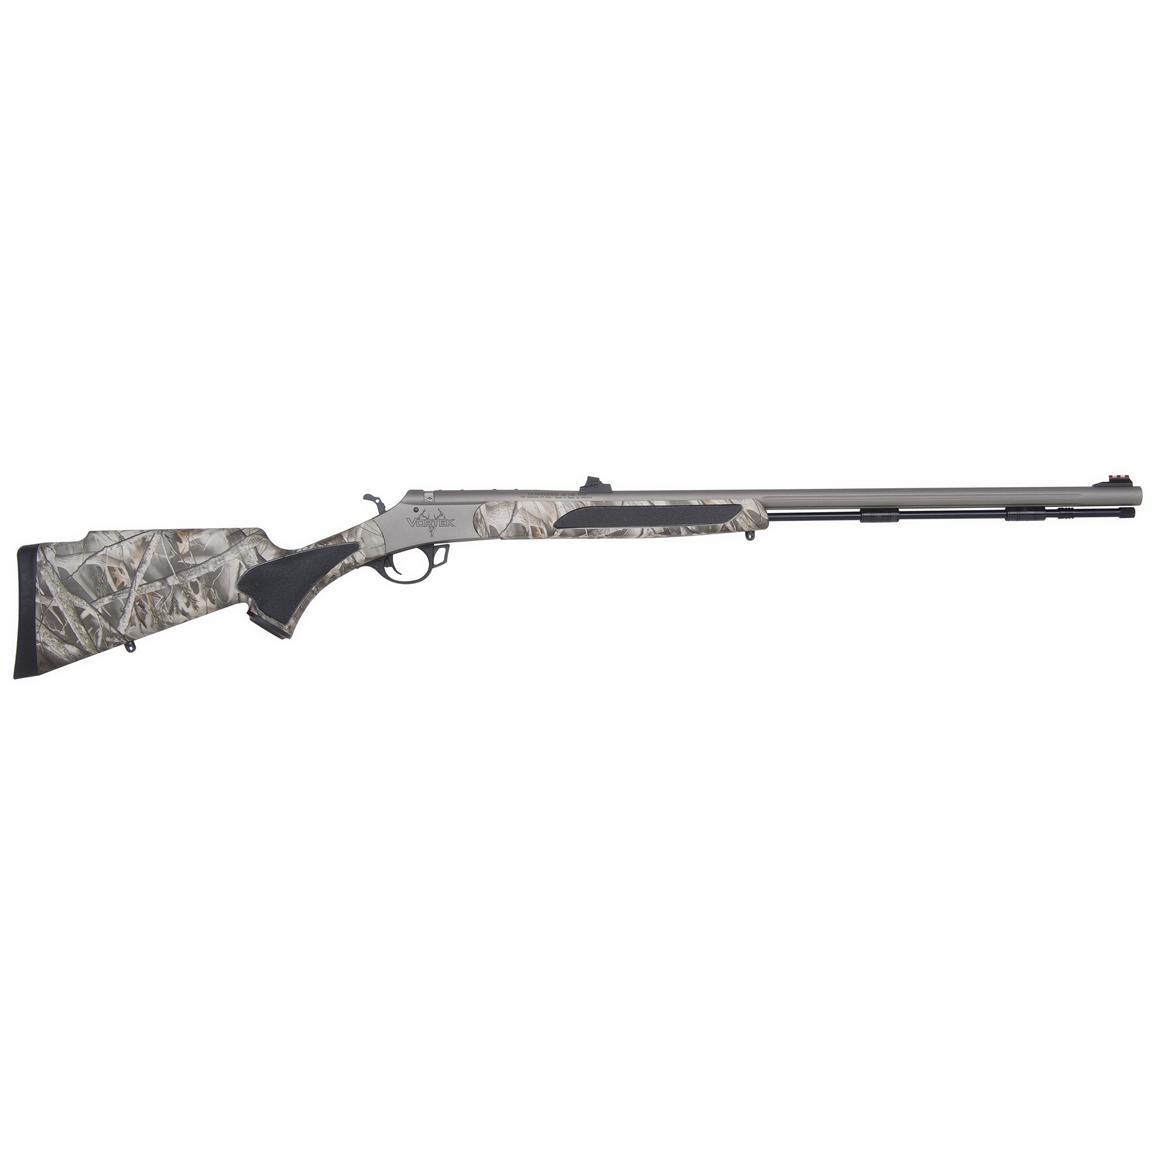 Traditions™ Vortek™ Ultralight .50 Cal. Reaper Buck Camo Black Powder Rifle with Williams™ Fiber Optic Sights